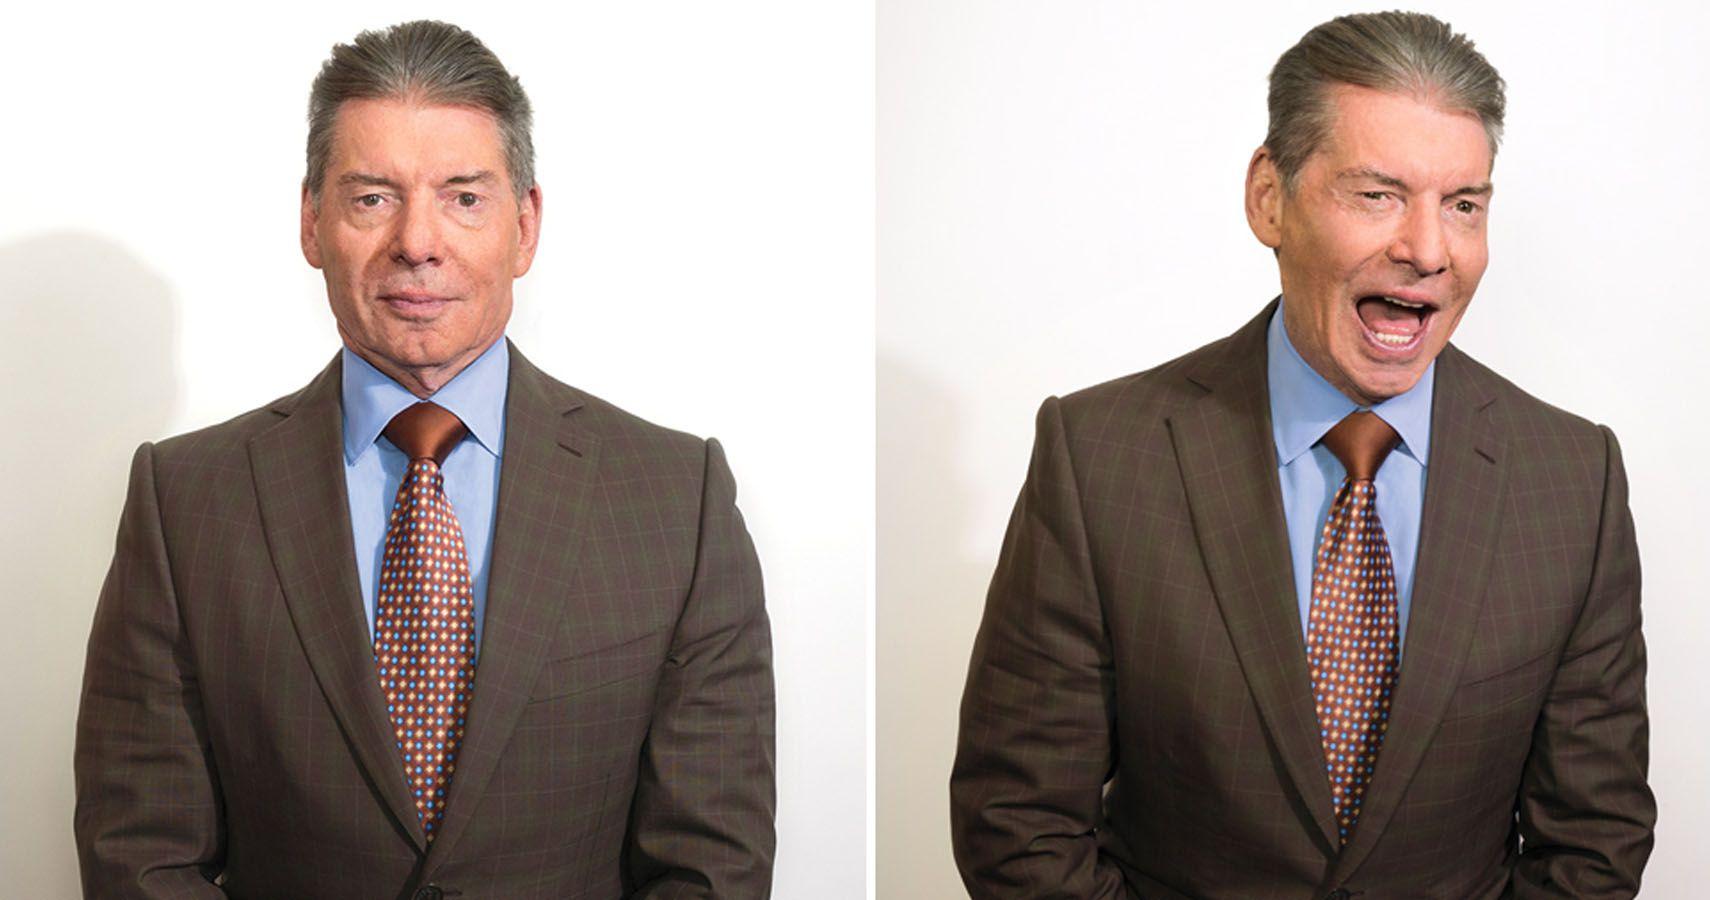 Vince Mcmahon Makes Odd Comments About Superstars Taking